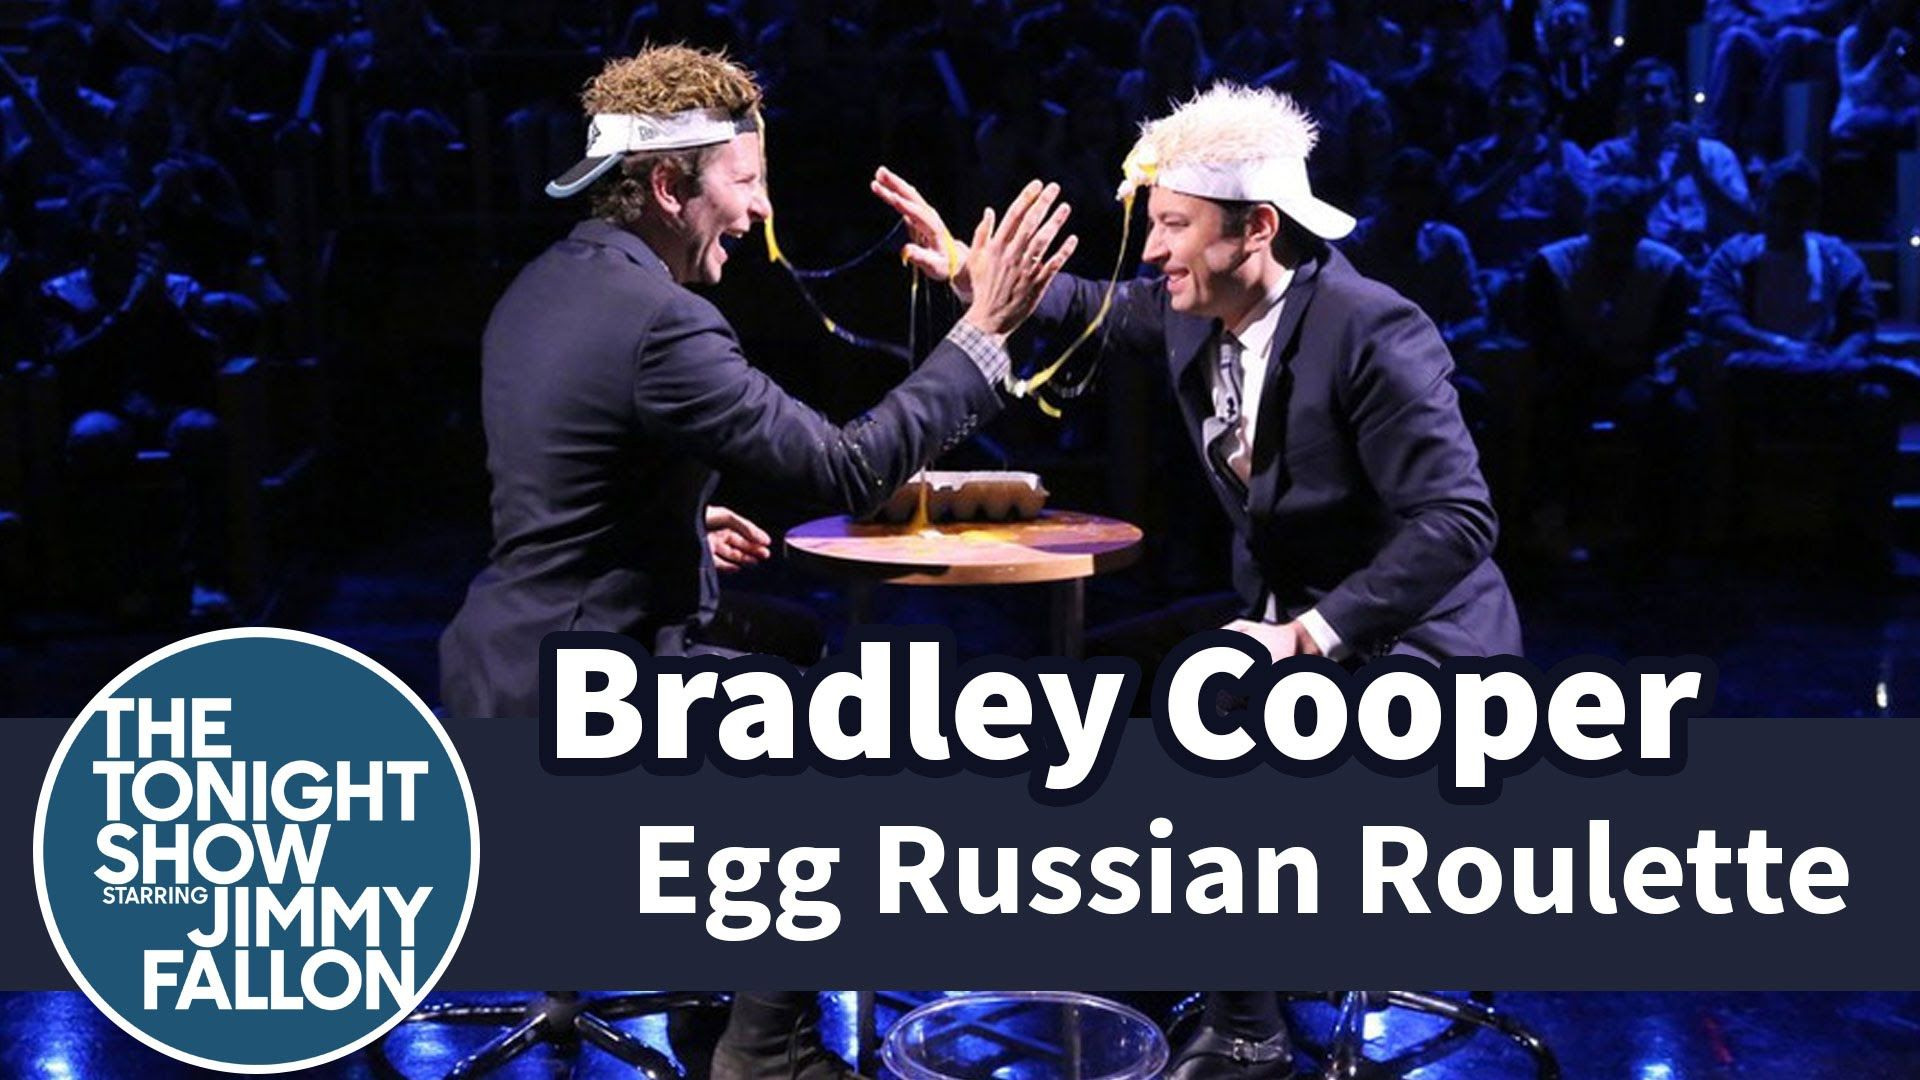 Bradley Cooper and Jimmy Fallon Compete in a Surprisingly